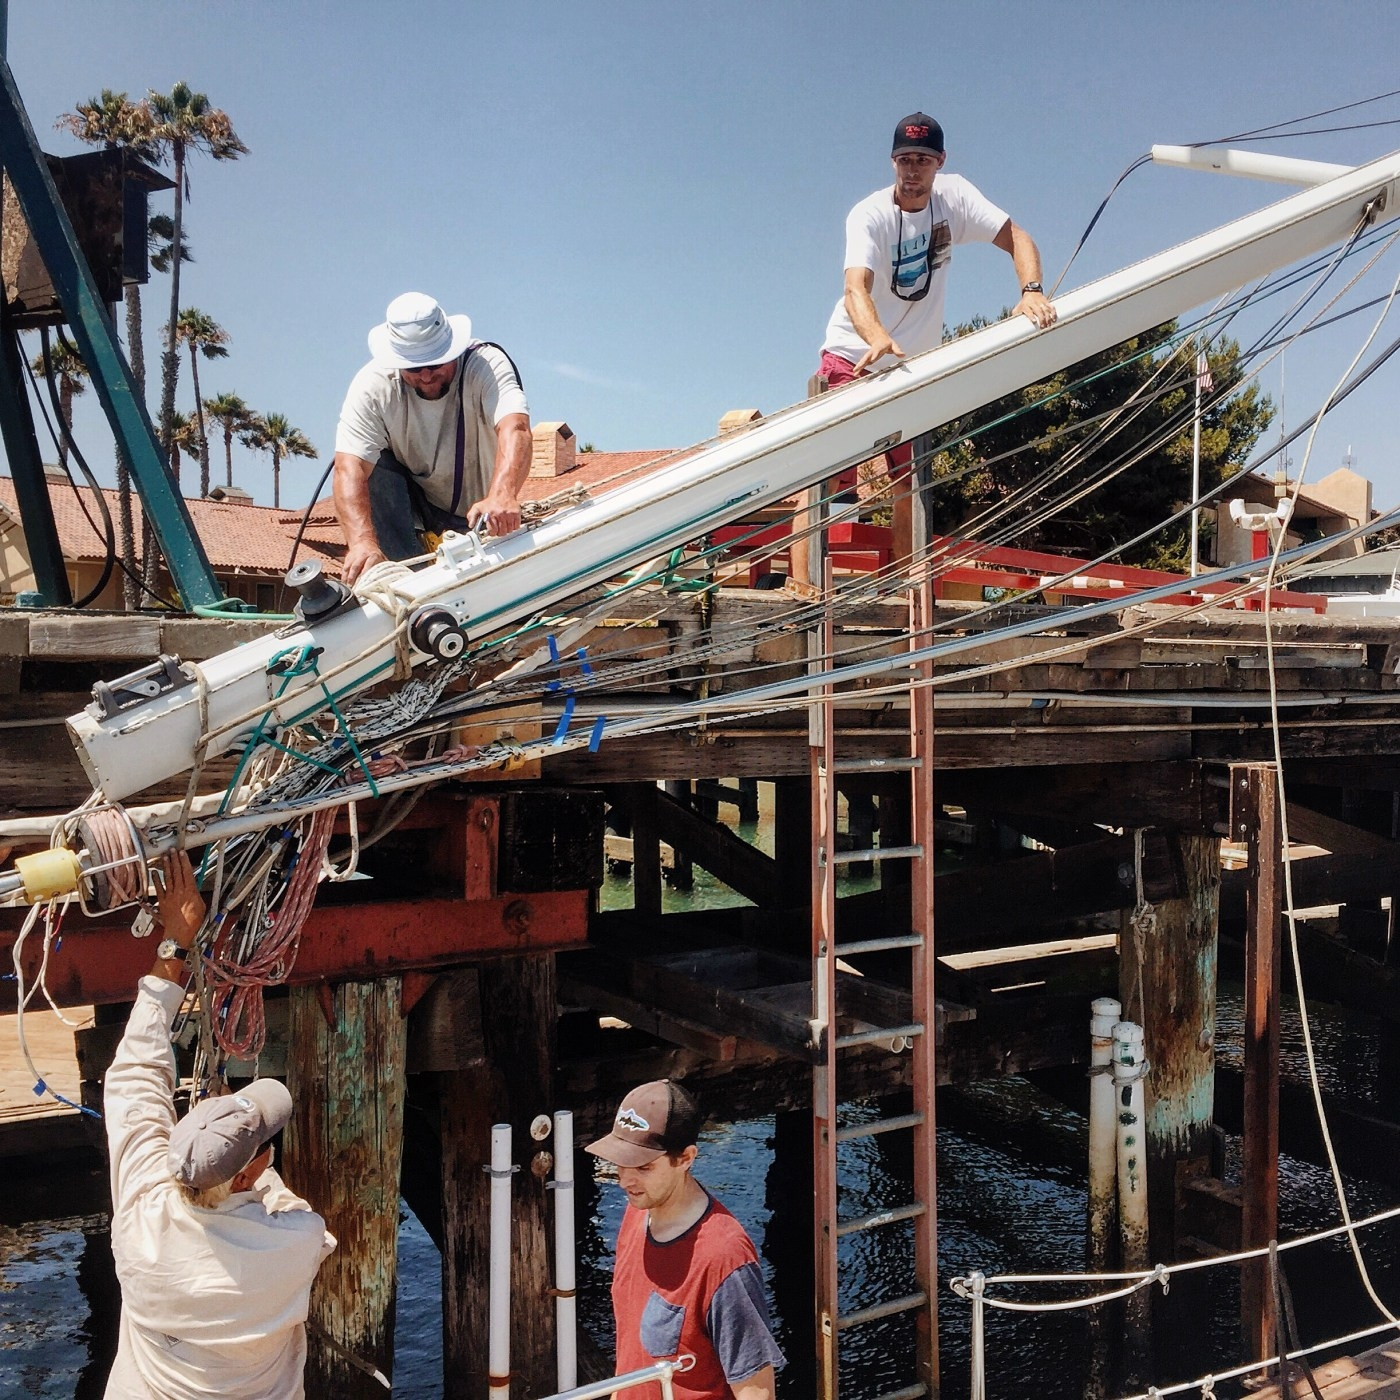 New Rigging - We really didn't know for sure how old the rigging was on Agape, or how she had been previously sailed. The rigging was oversized as it is on most cruising boats and seemed to be in fairly good condition but we wanted to know for sure before cruising the next few years.